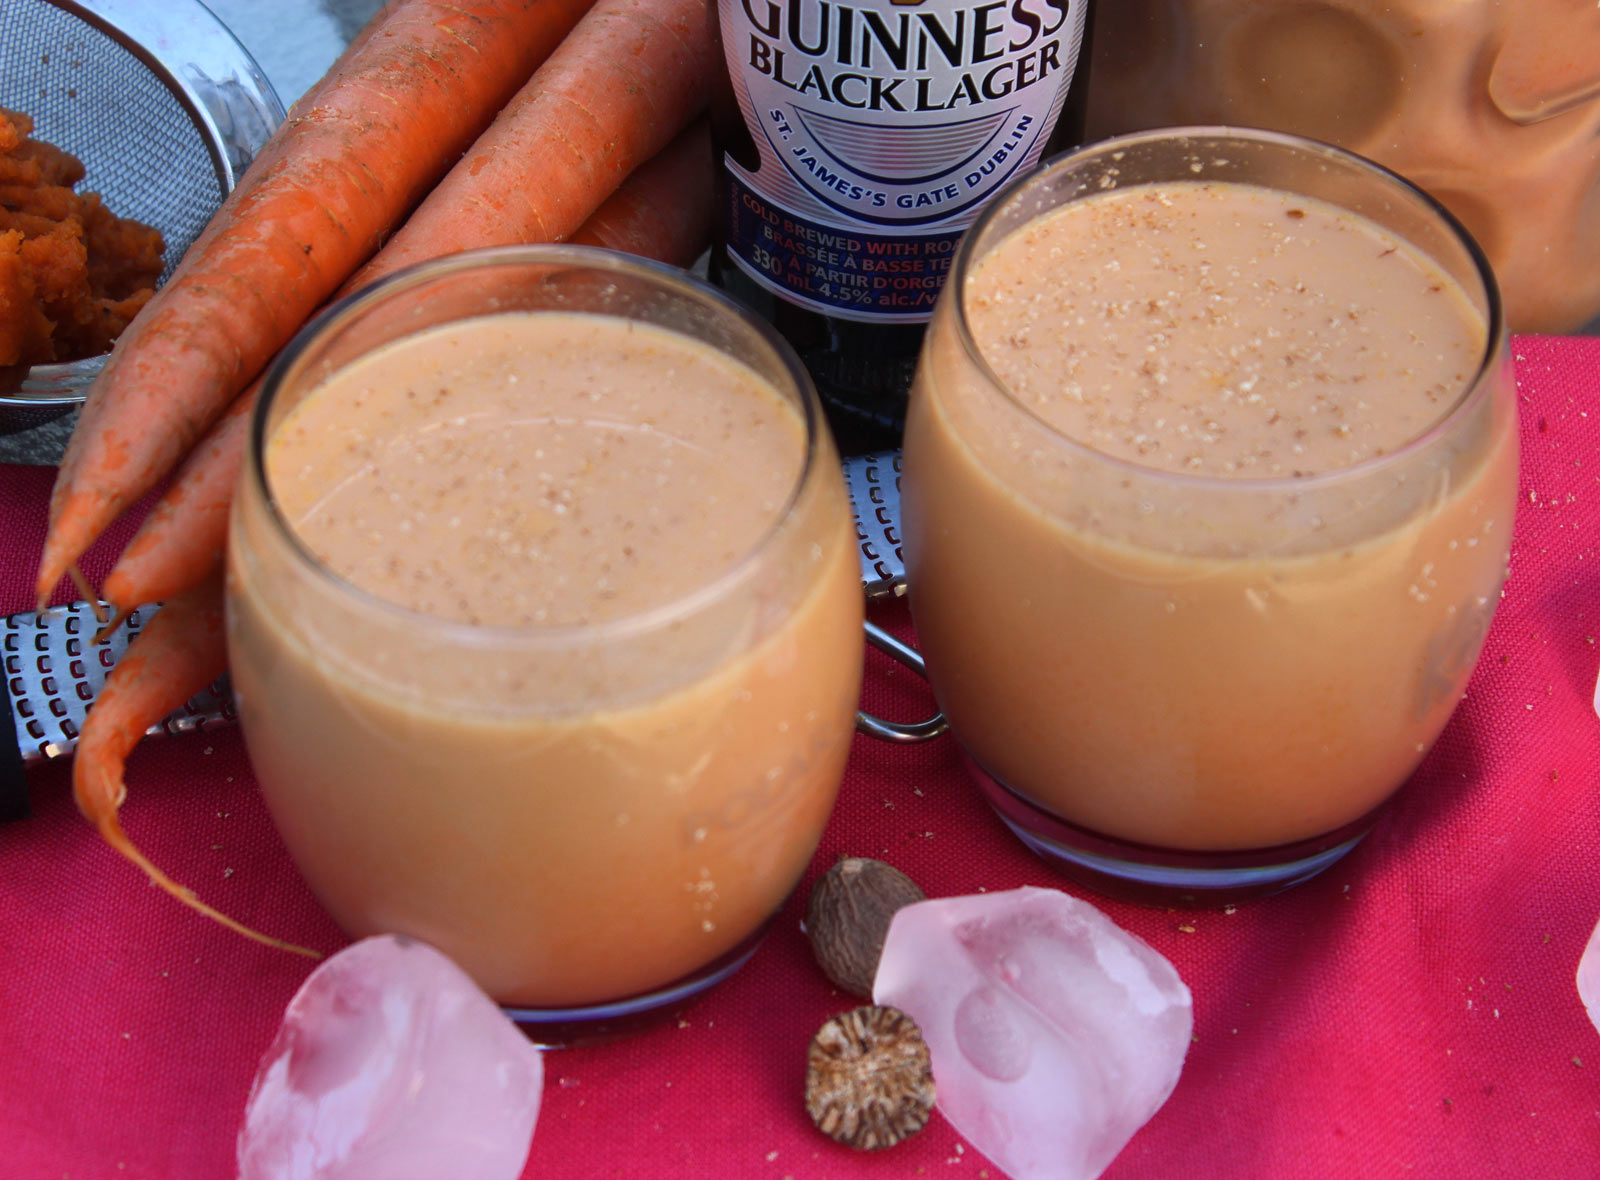 Jamaican Carrot Juice With Guinness